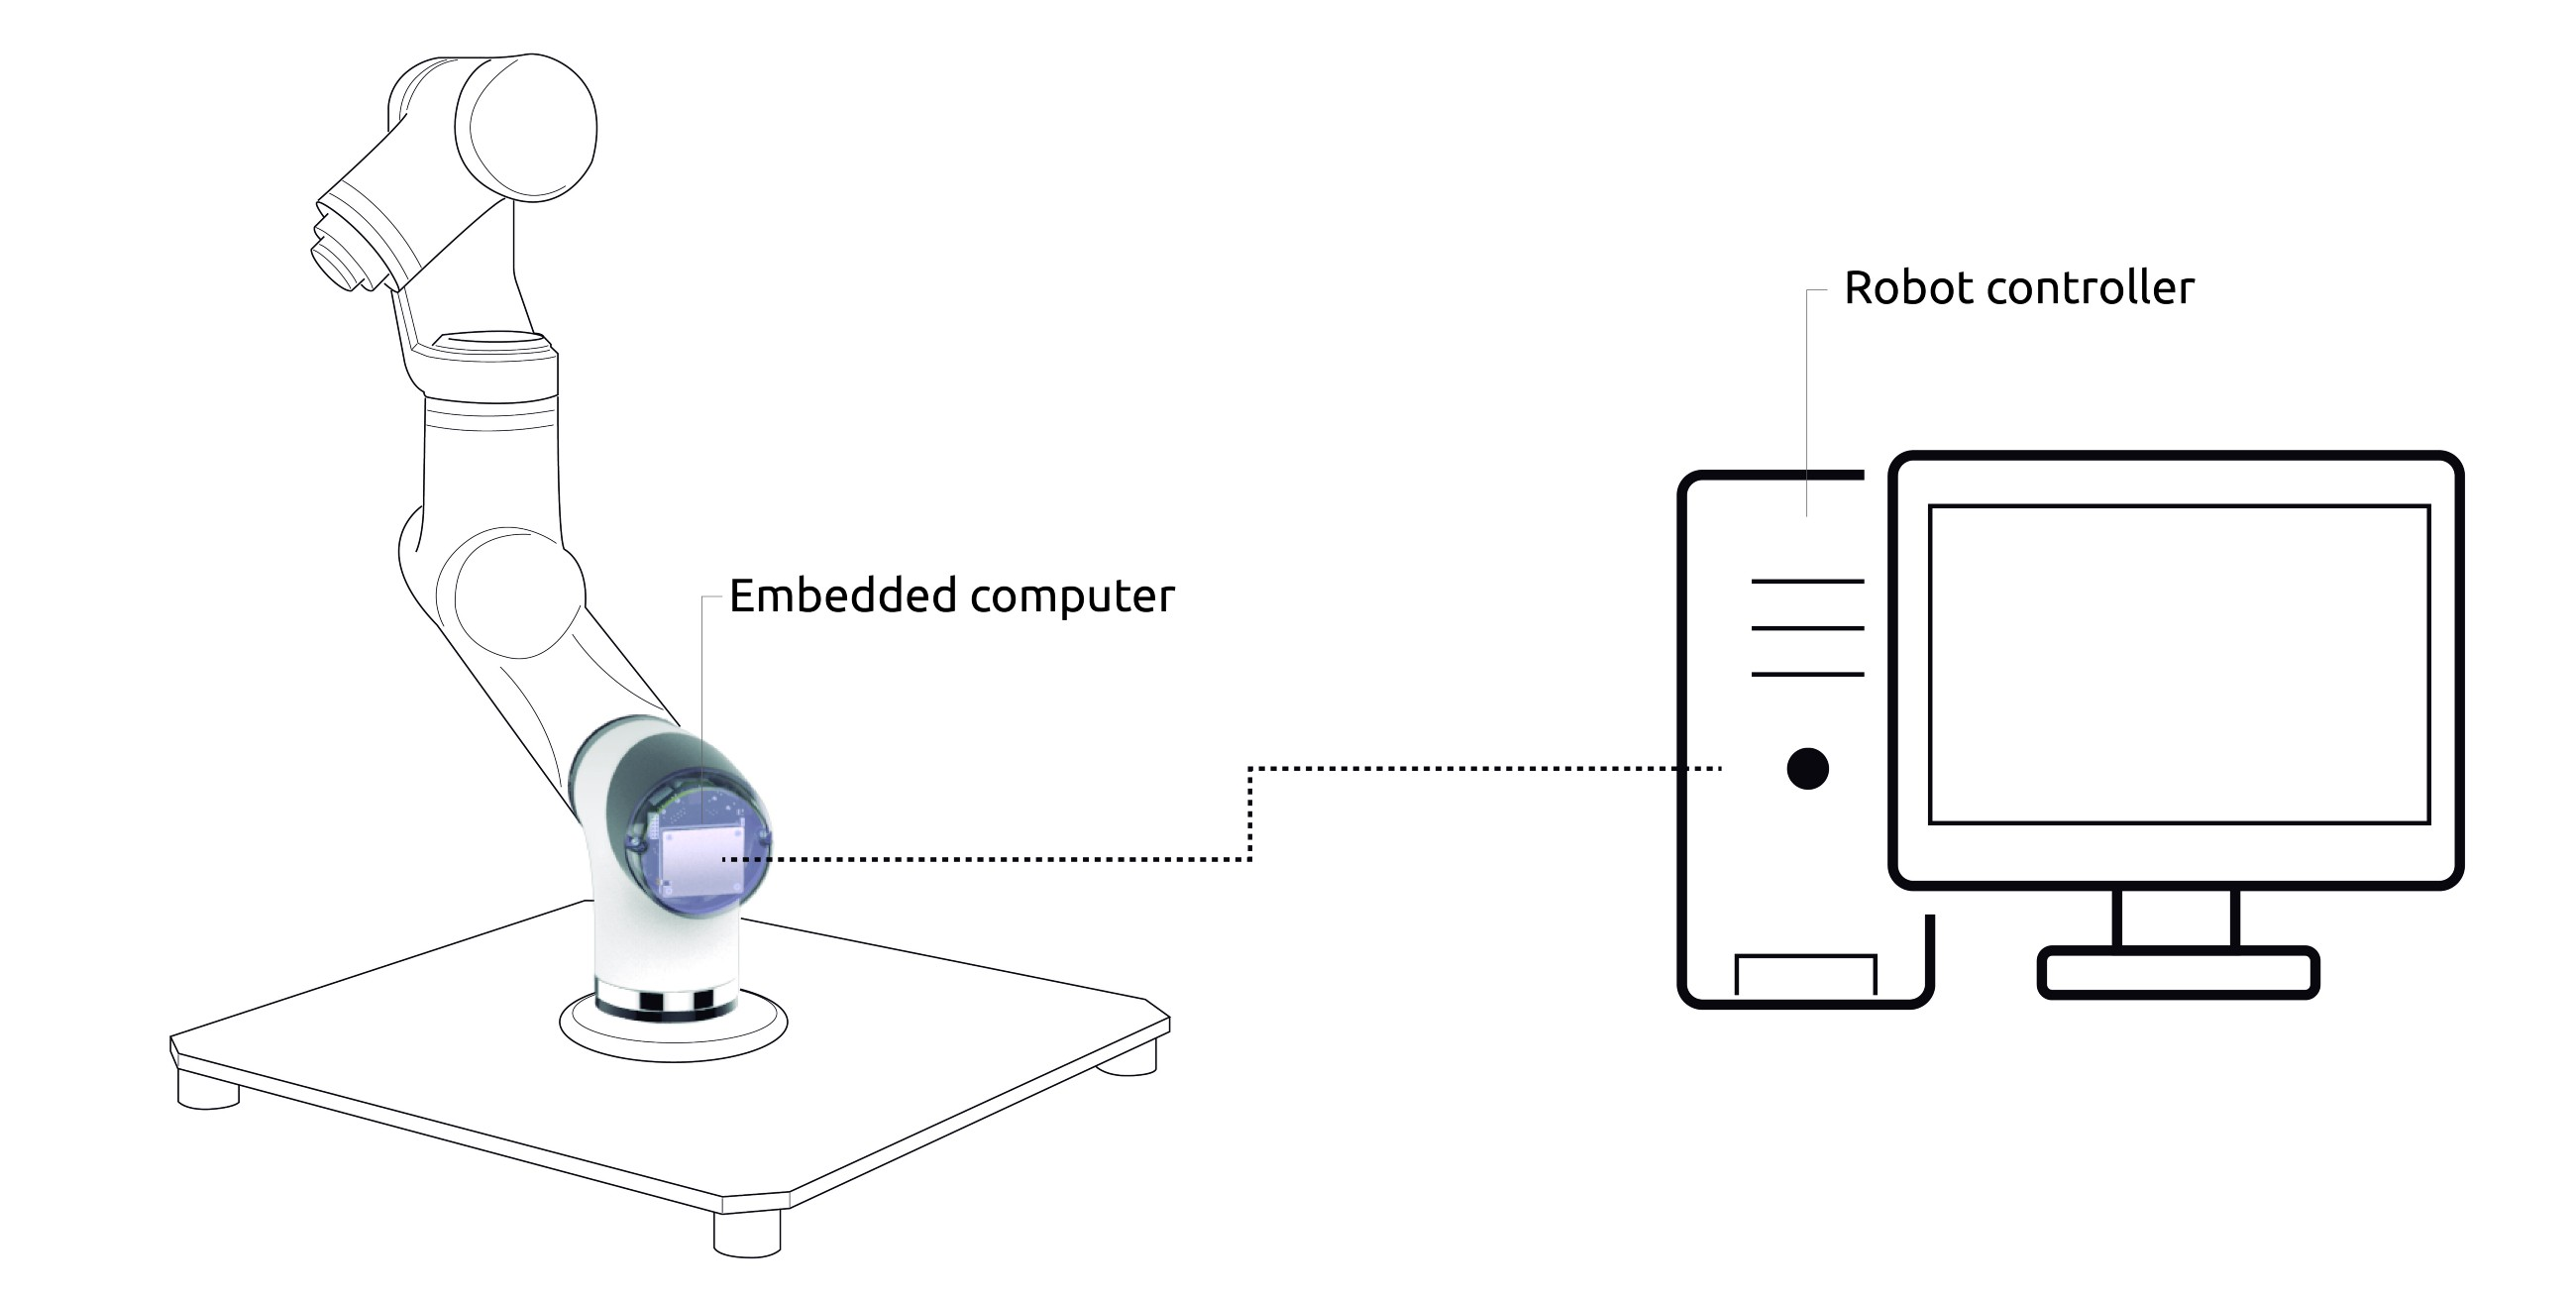 Towards a distributed and real-time framework for robots - By